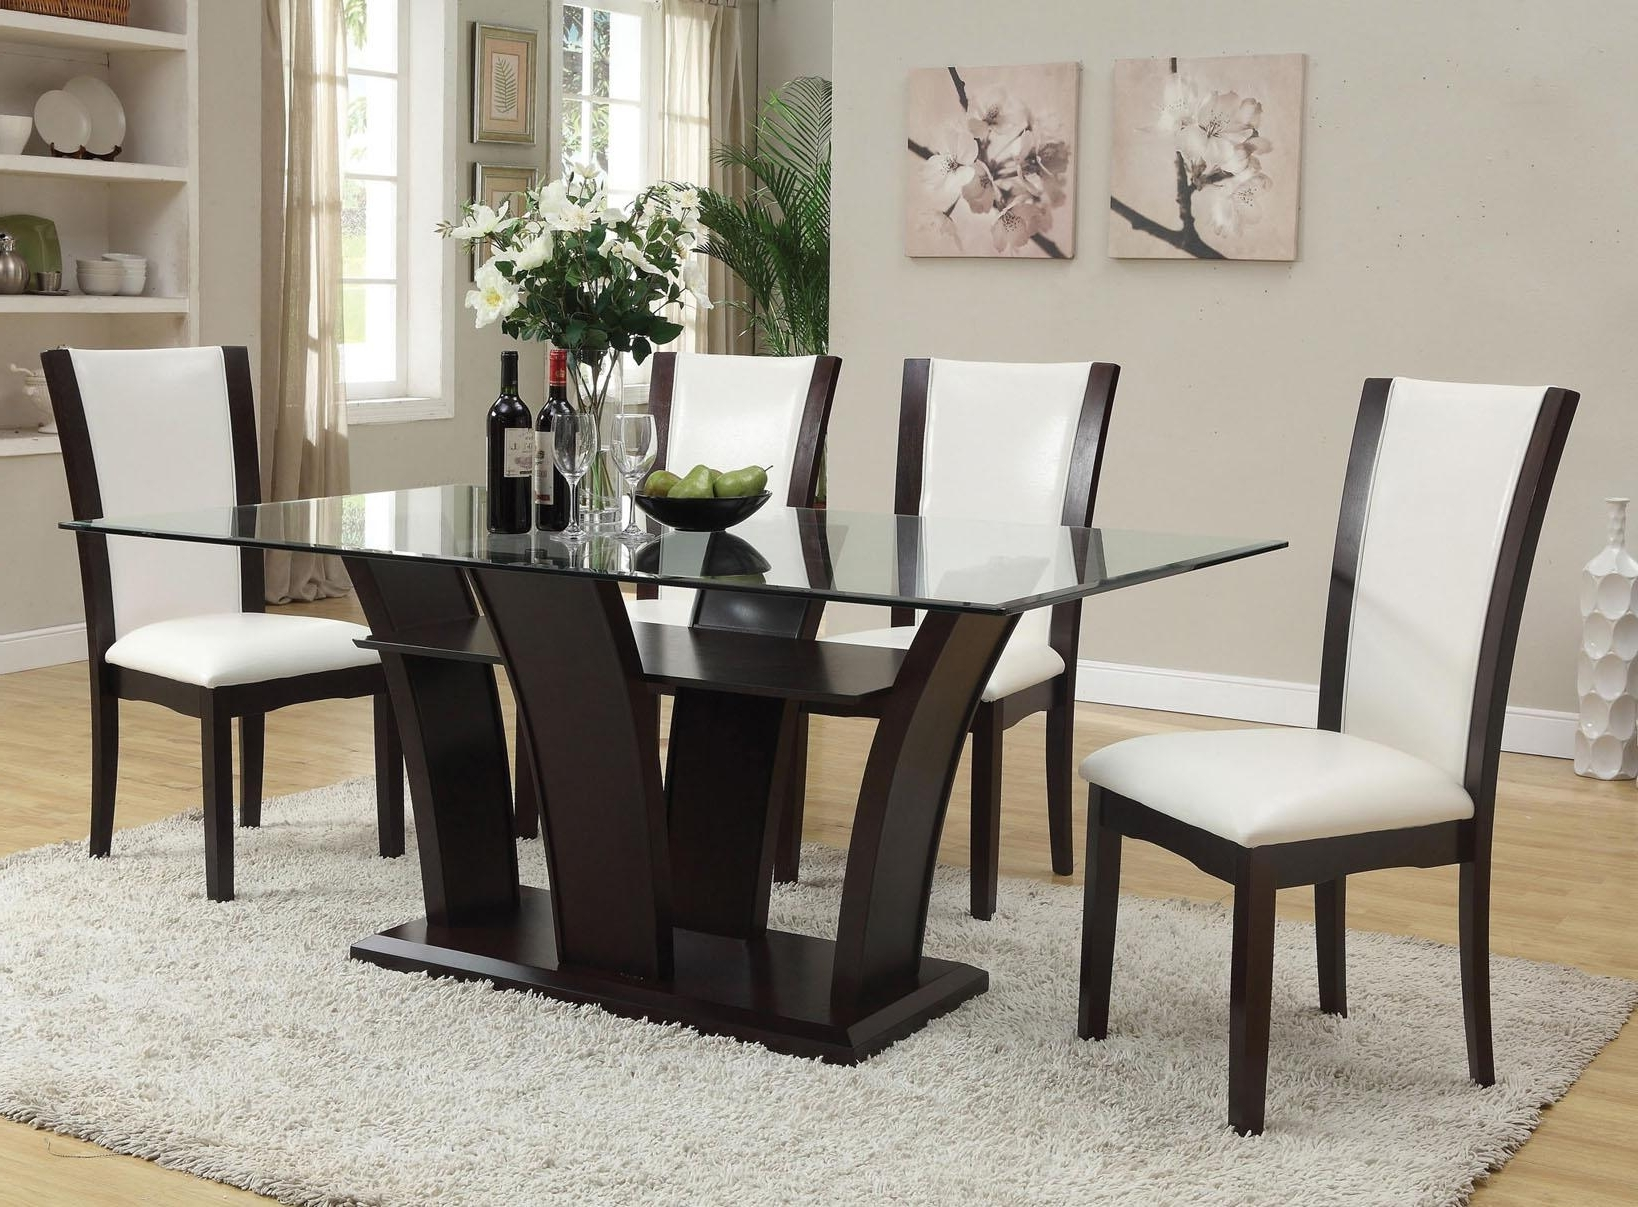 Latest Acme Furniture Malik Contemporary Casual Dining Table W/ Glass Top Regarding Contemporary Dining Furniture (View 14 of 25)